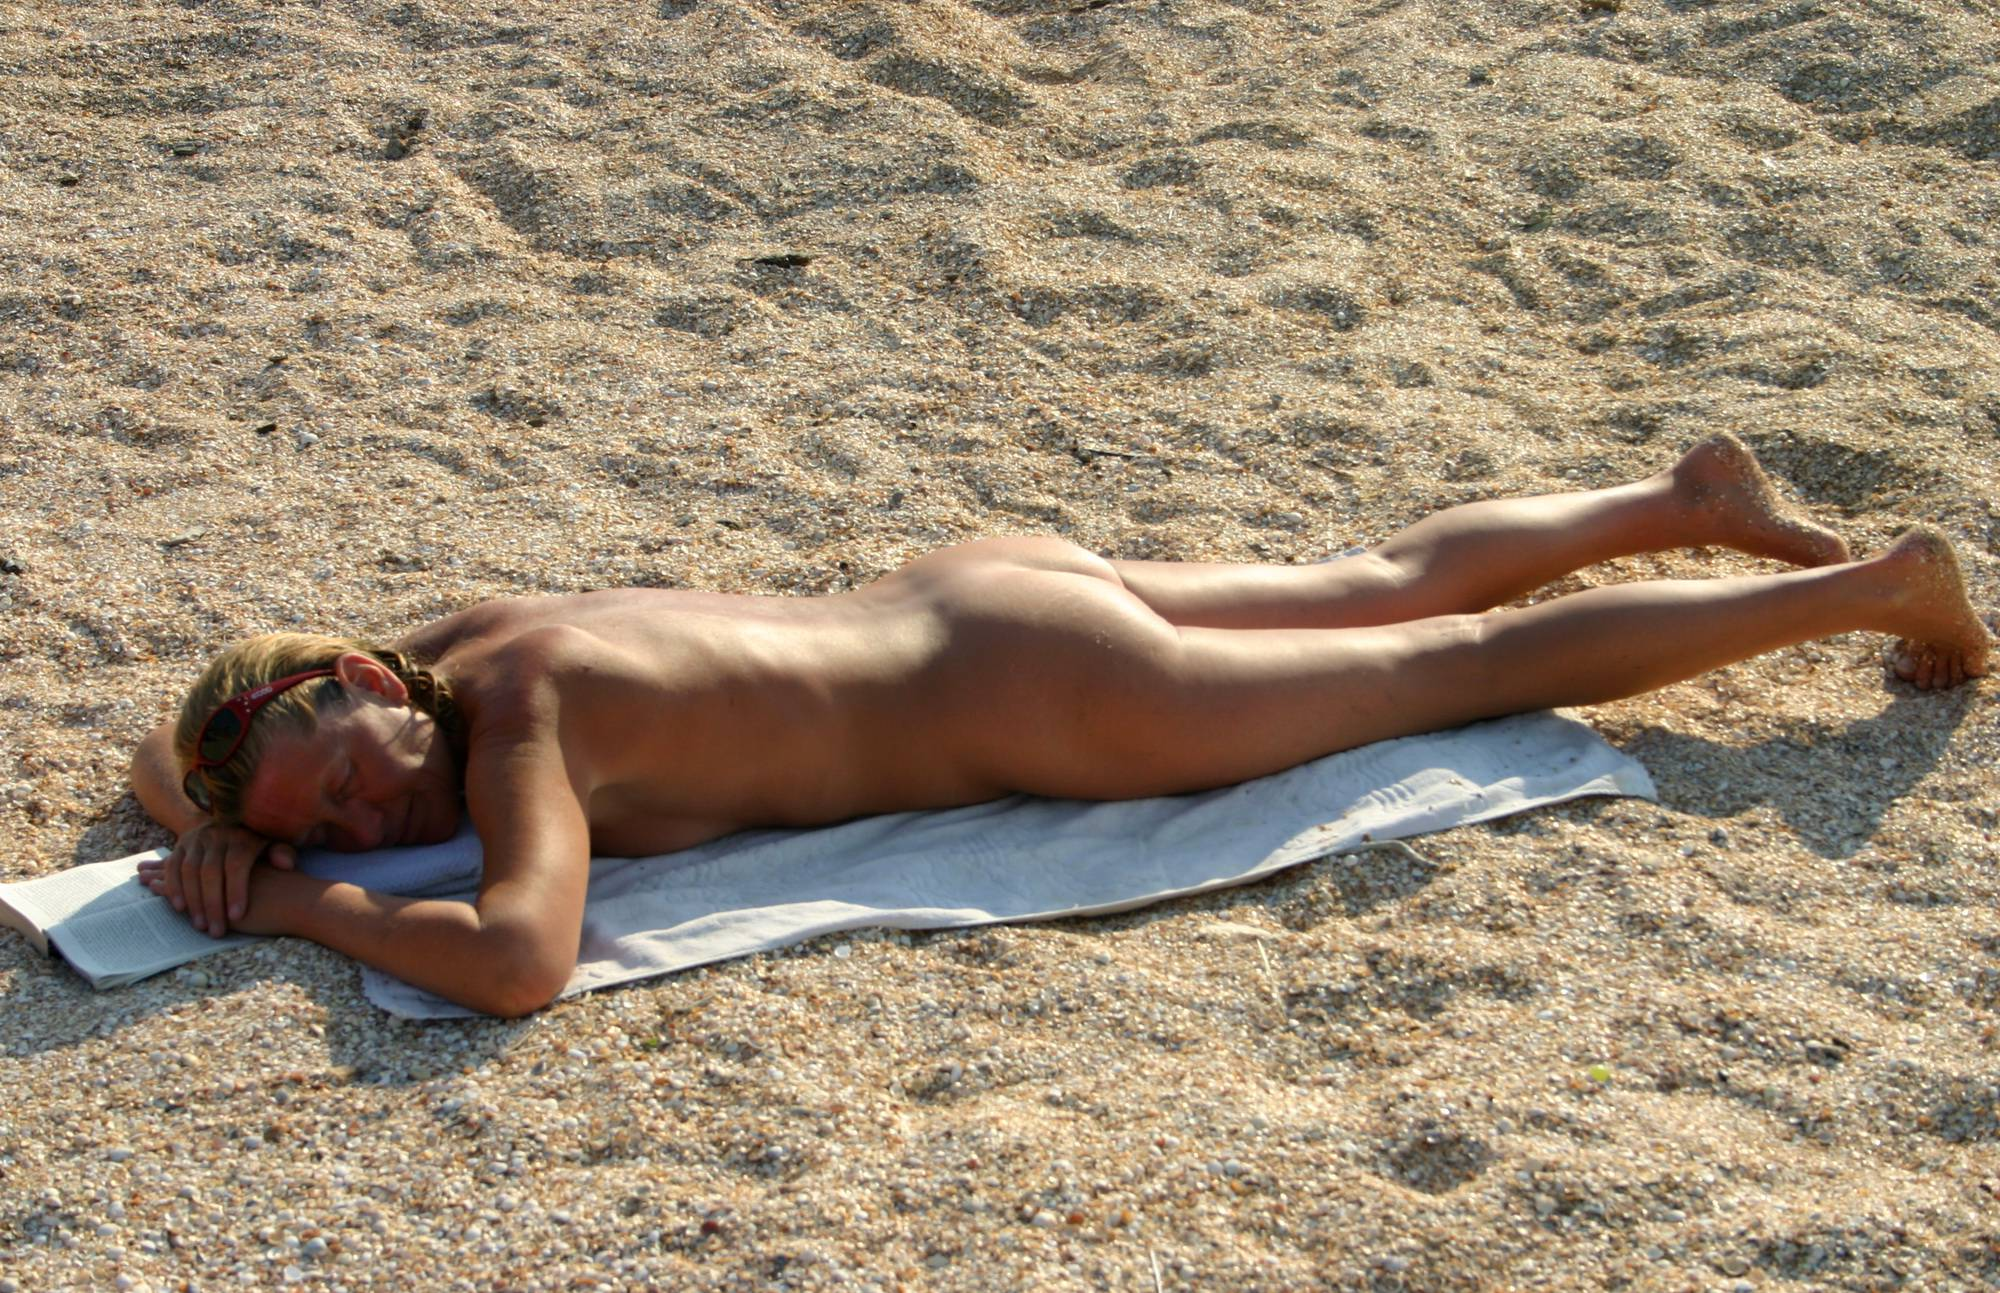 Nudist Gallery Mattress Beach Relaxation - 1